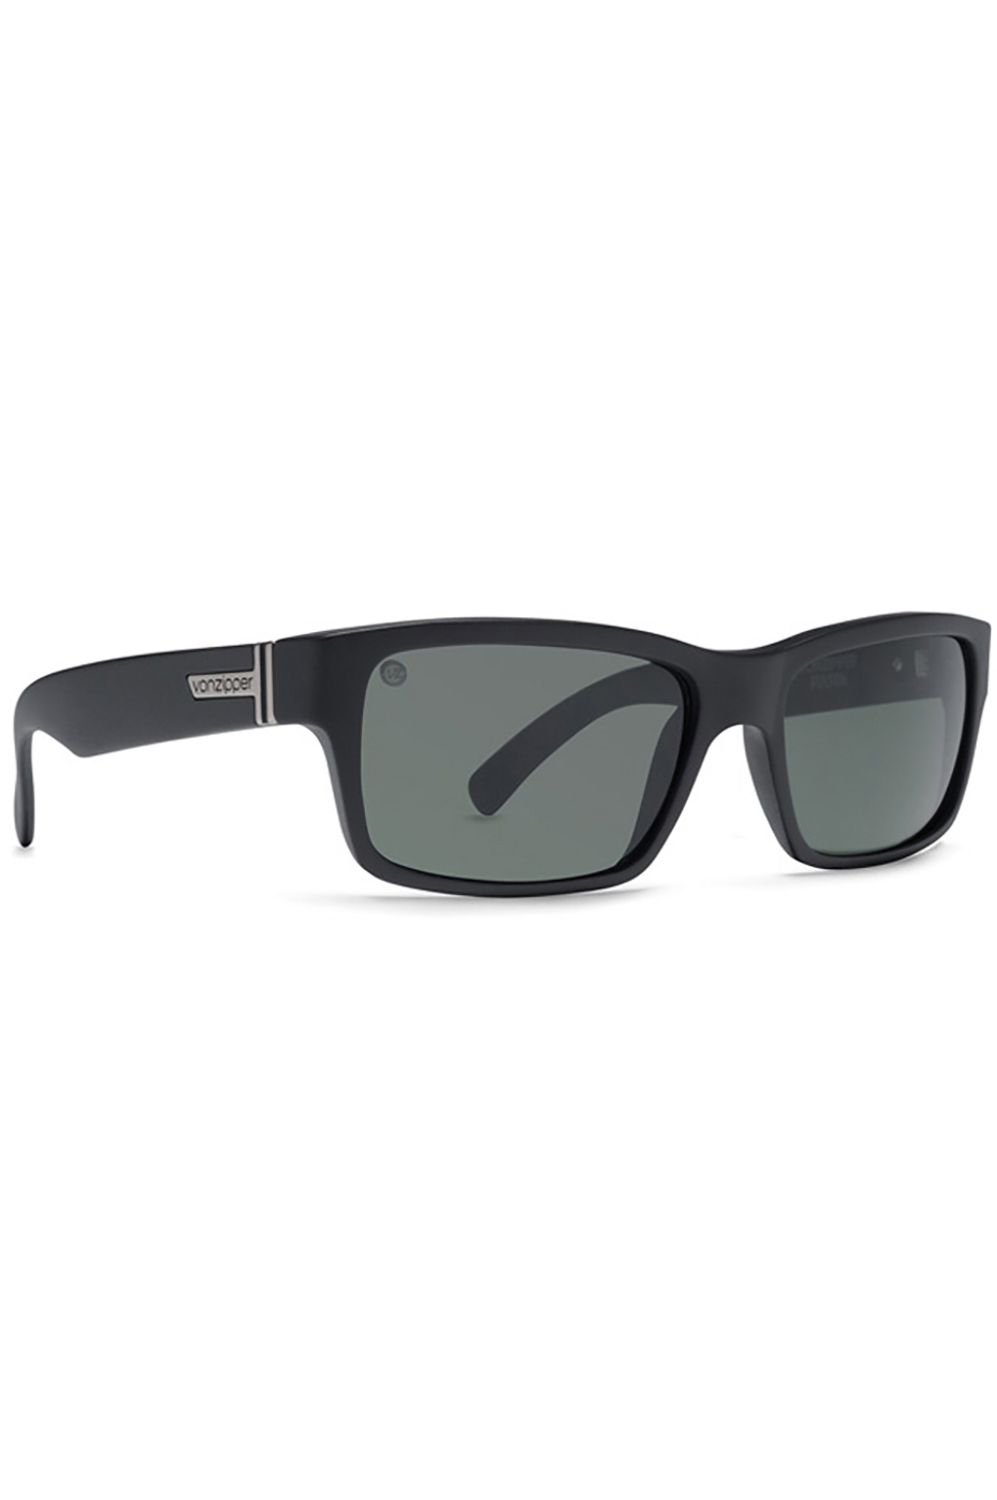 Oculos VonZipper FULTON Black Satin / Grey